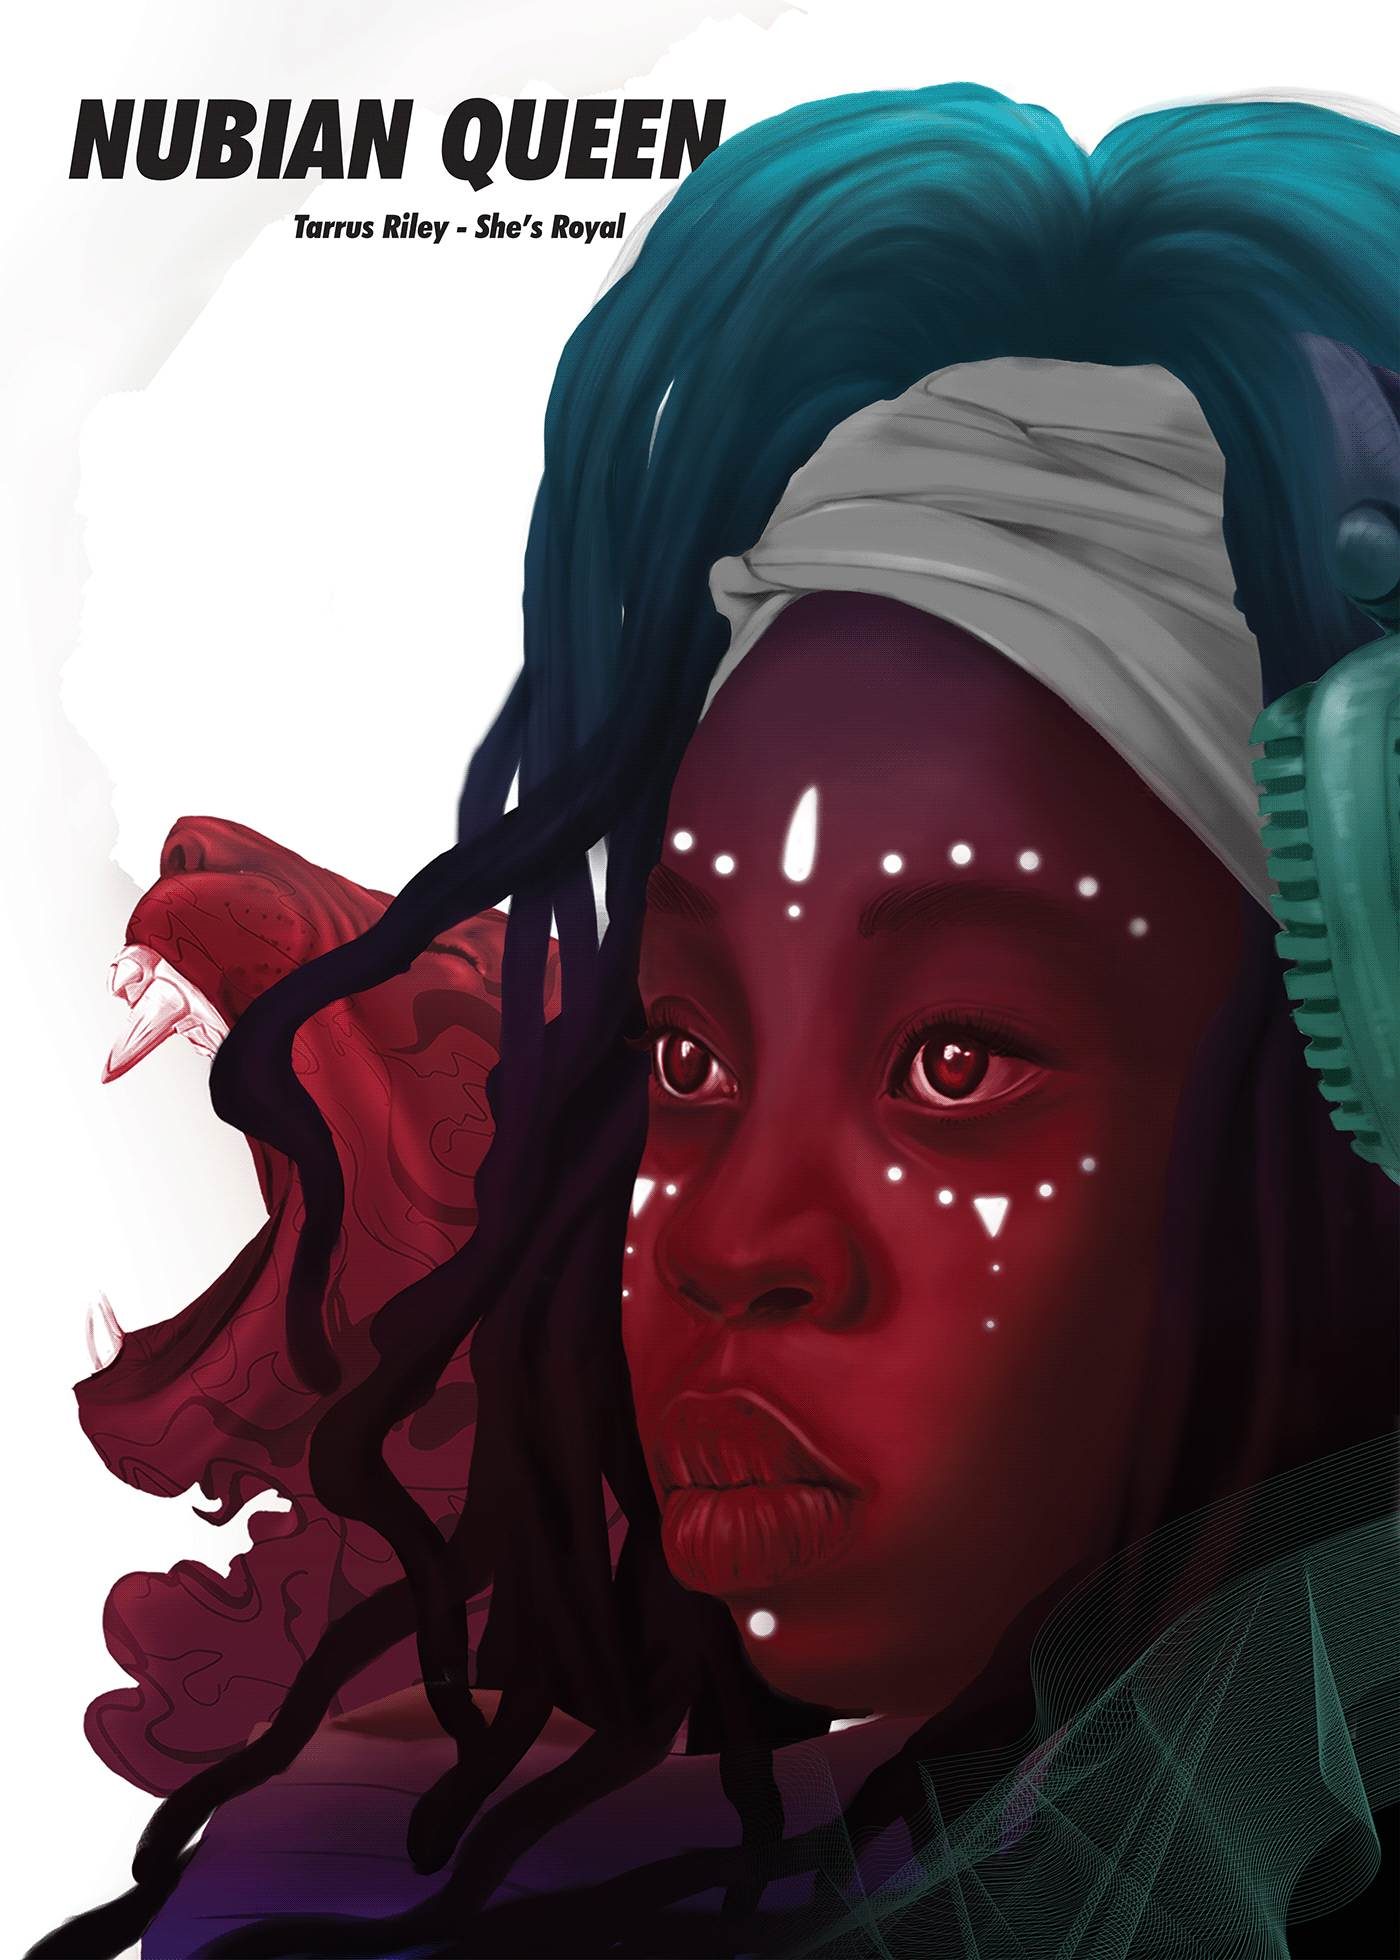 Nubian Queen artwork illustrated by Kenneil Smith